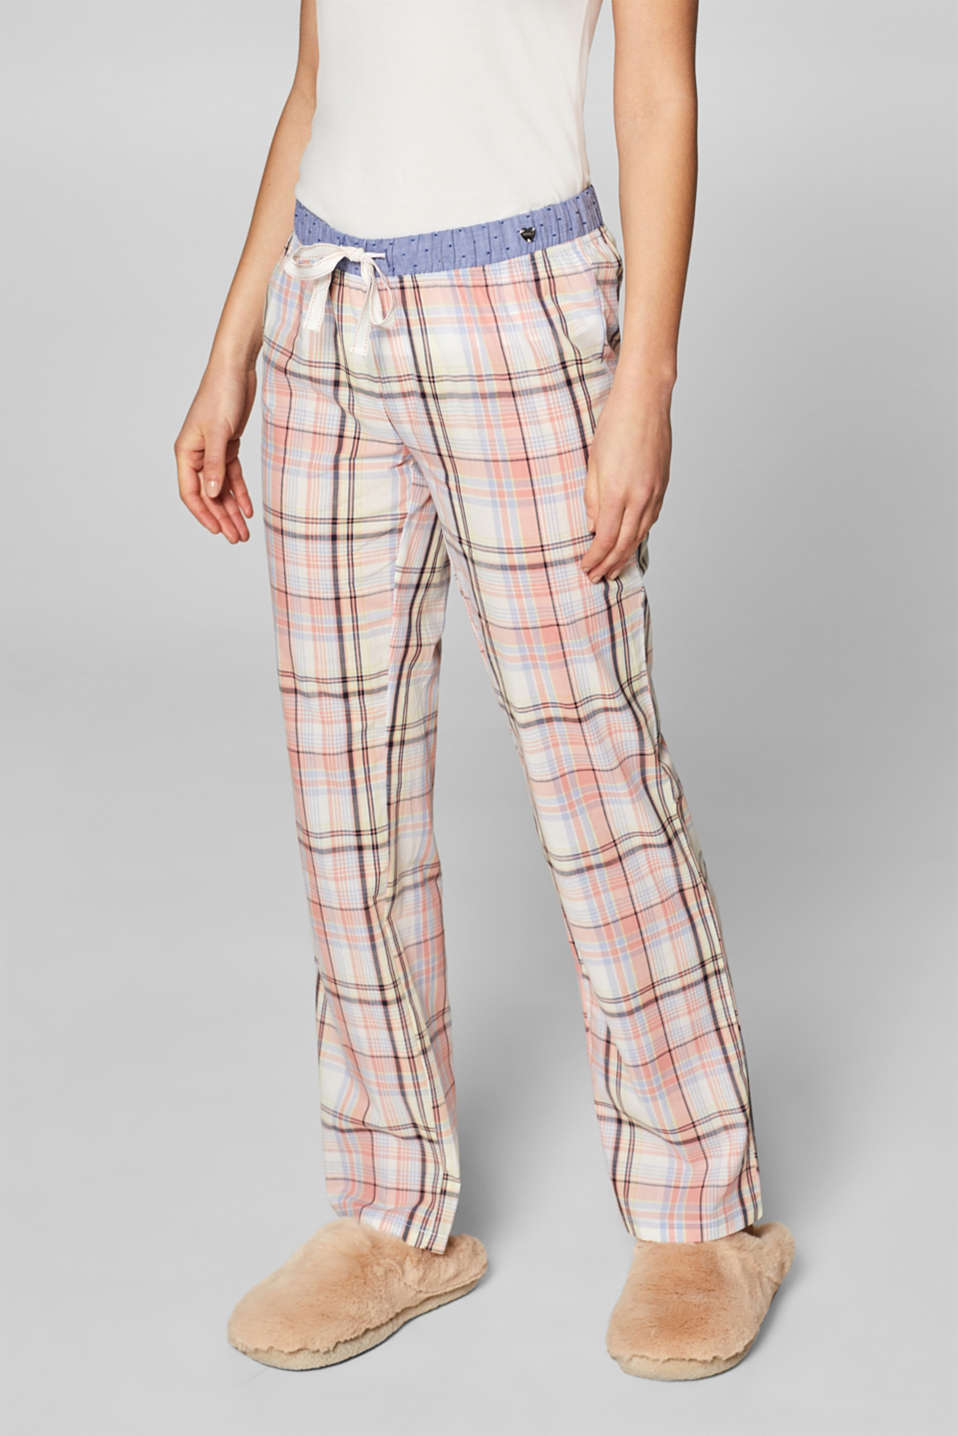 Esprit - Fabric bottoms with colourful checks, 100% cotton